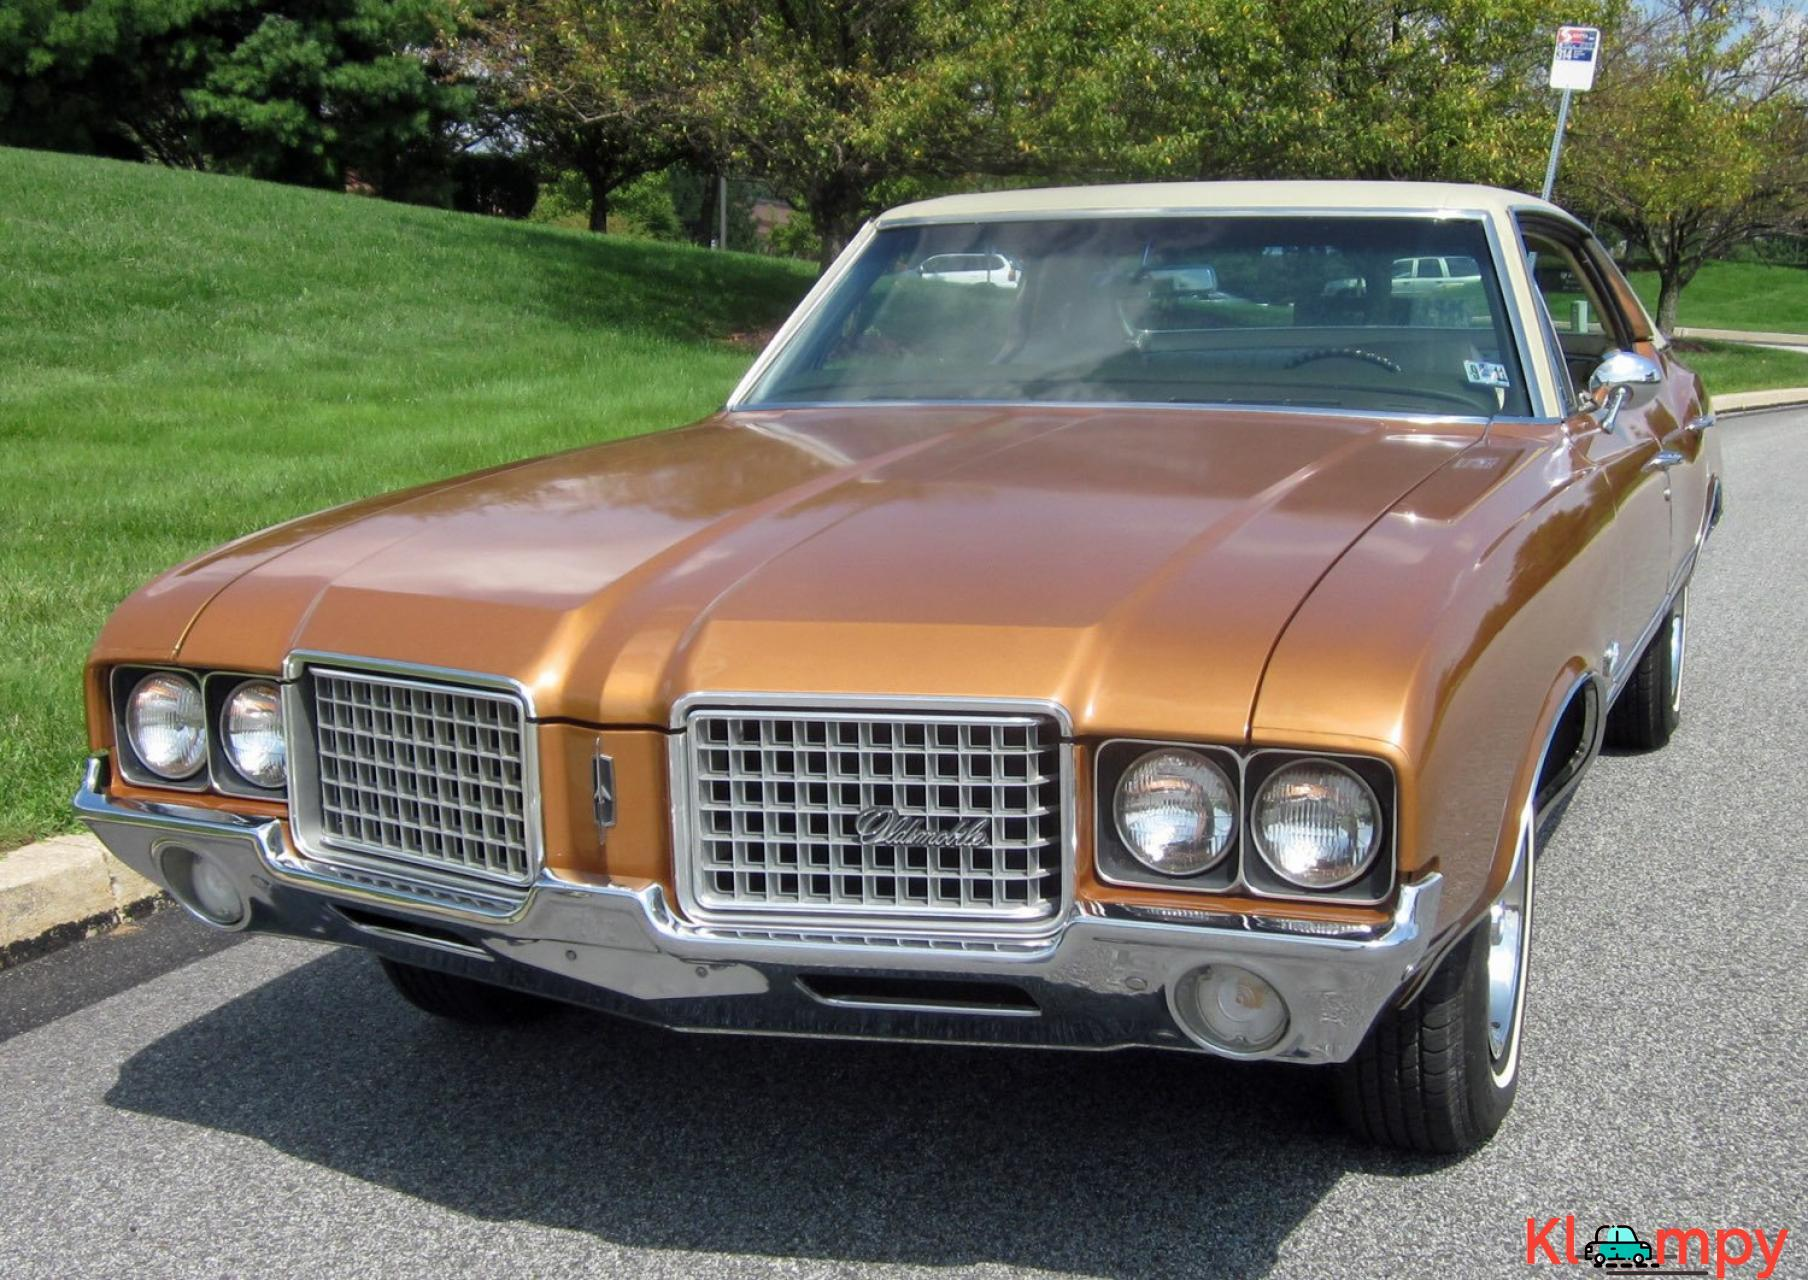 1972 Oldsmobile Cutlass Sport Sedan V8 - 2/20